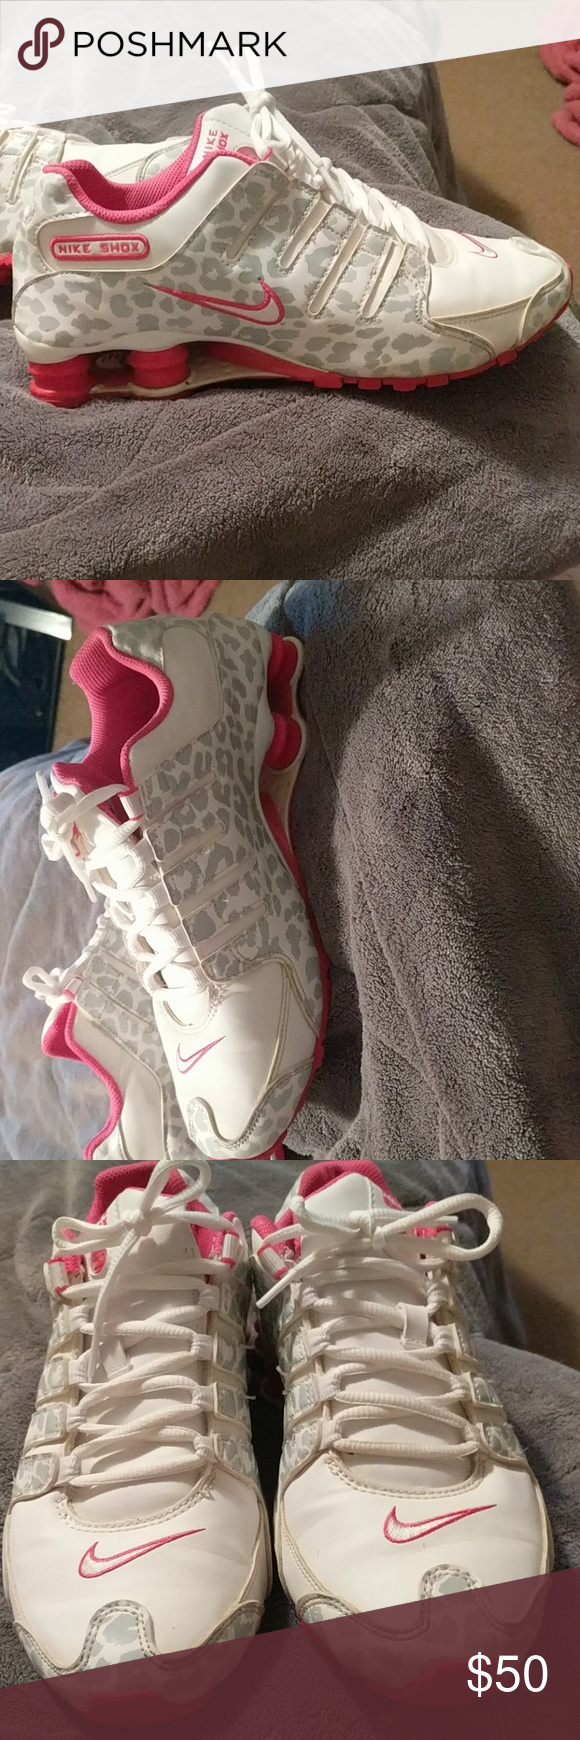 new style 5e853 61e32 Nike shox Pink and white leopard print - like new! Only worn a handful of  times! Nike Shoes Sneakers